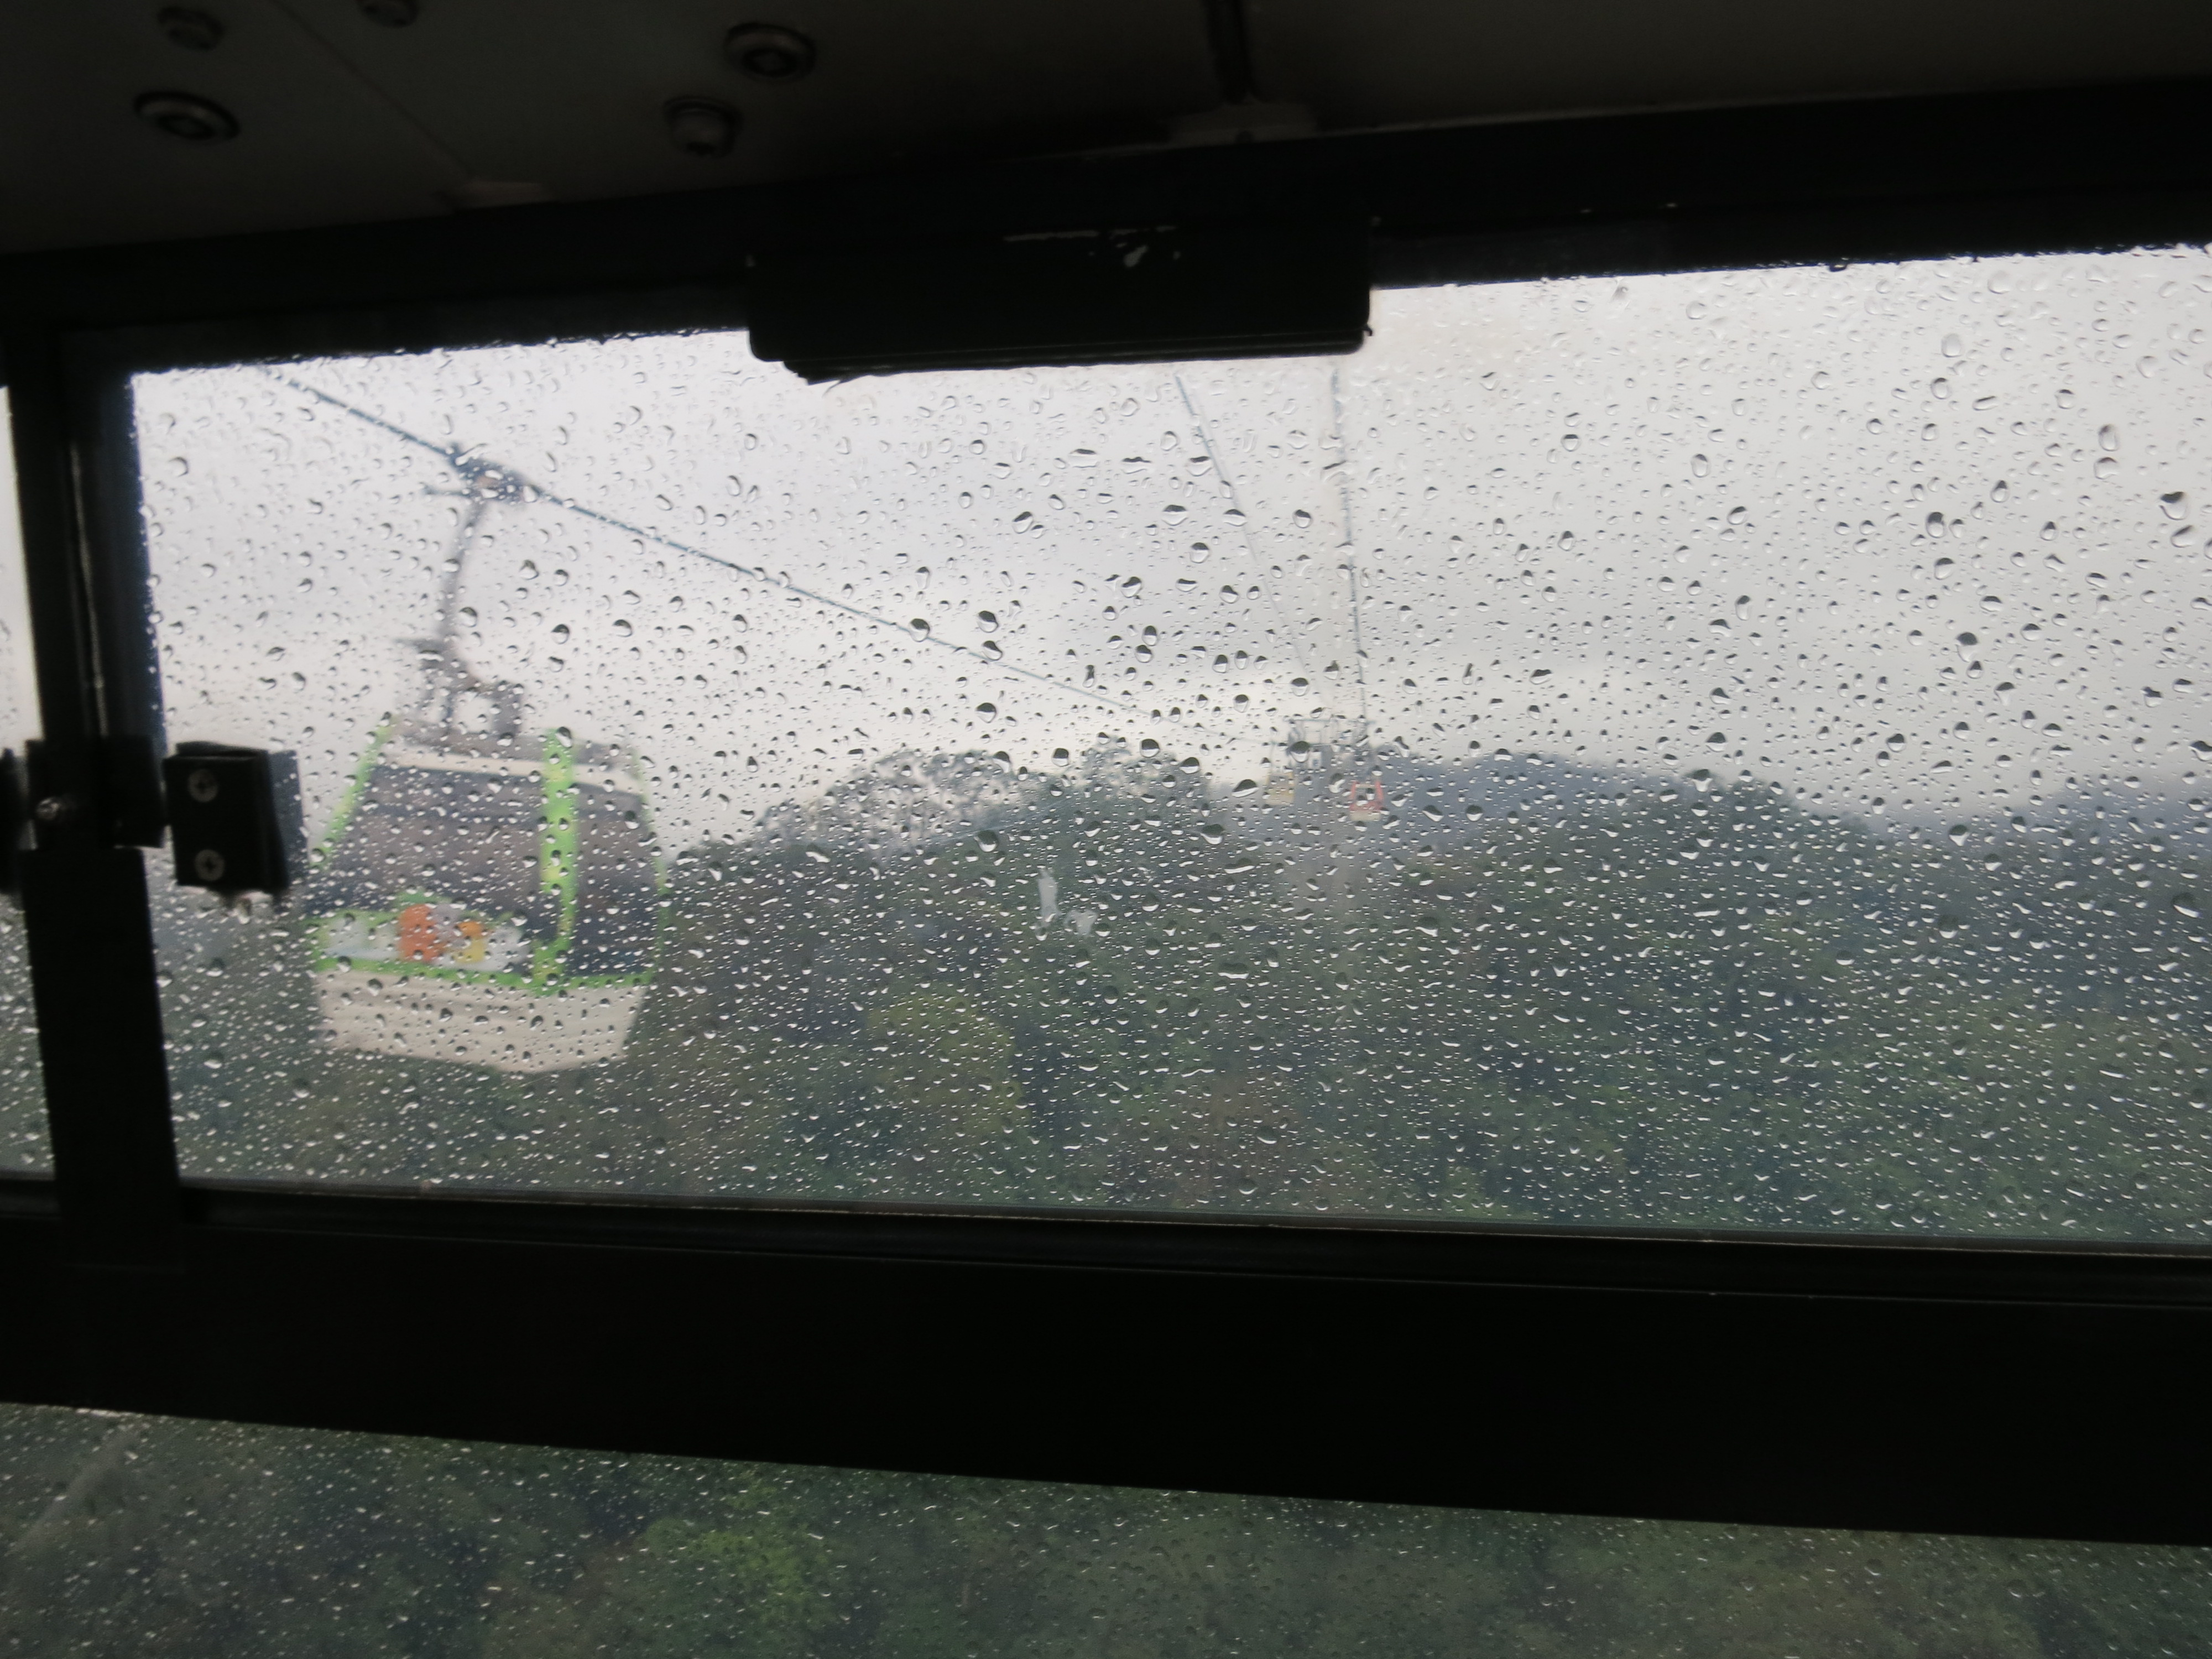 Up into the clouds ~ on the Maokong Gondola 貓空纜車